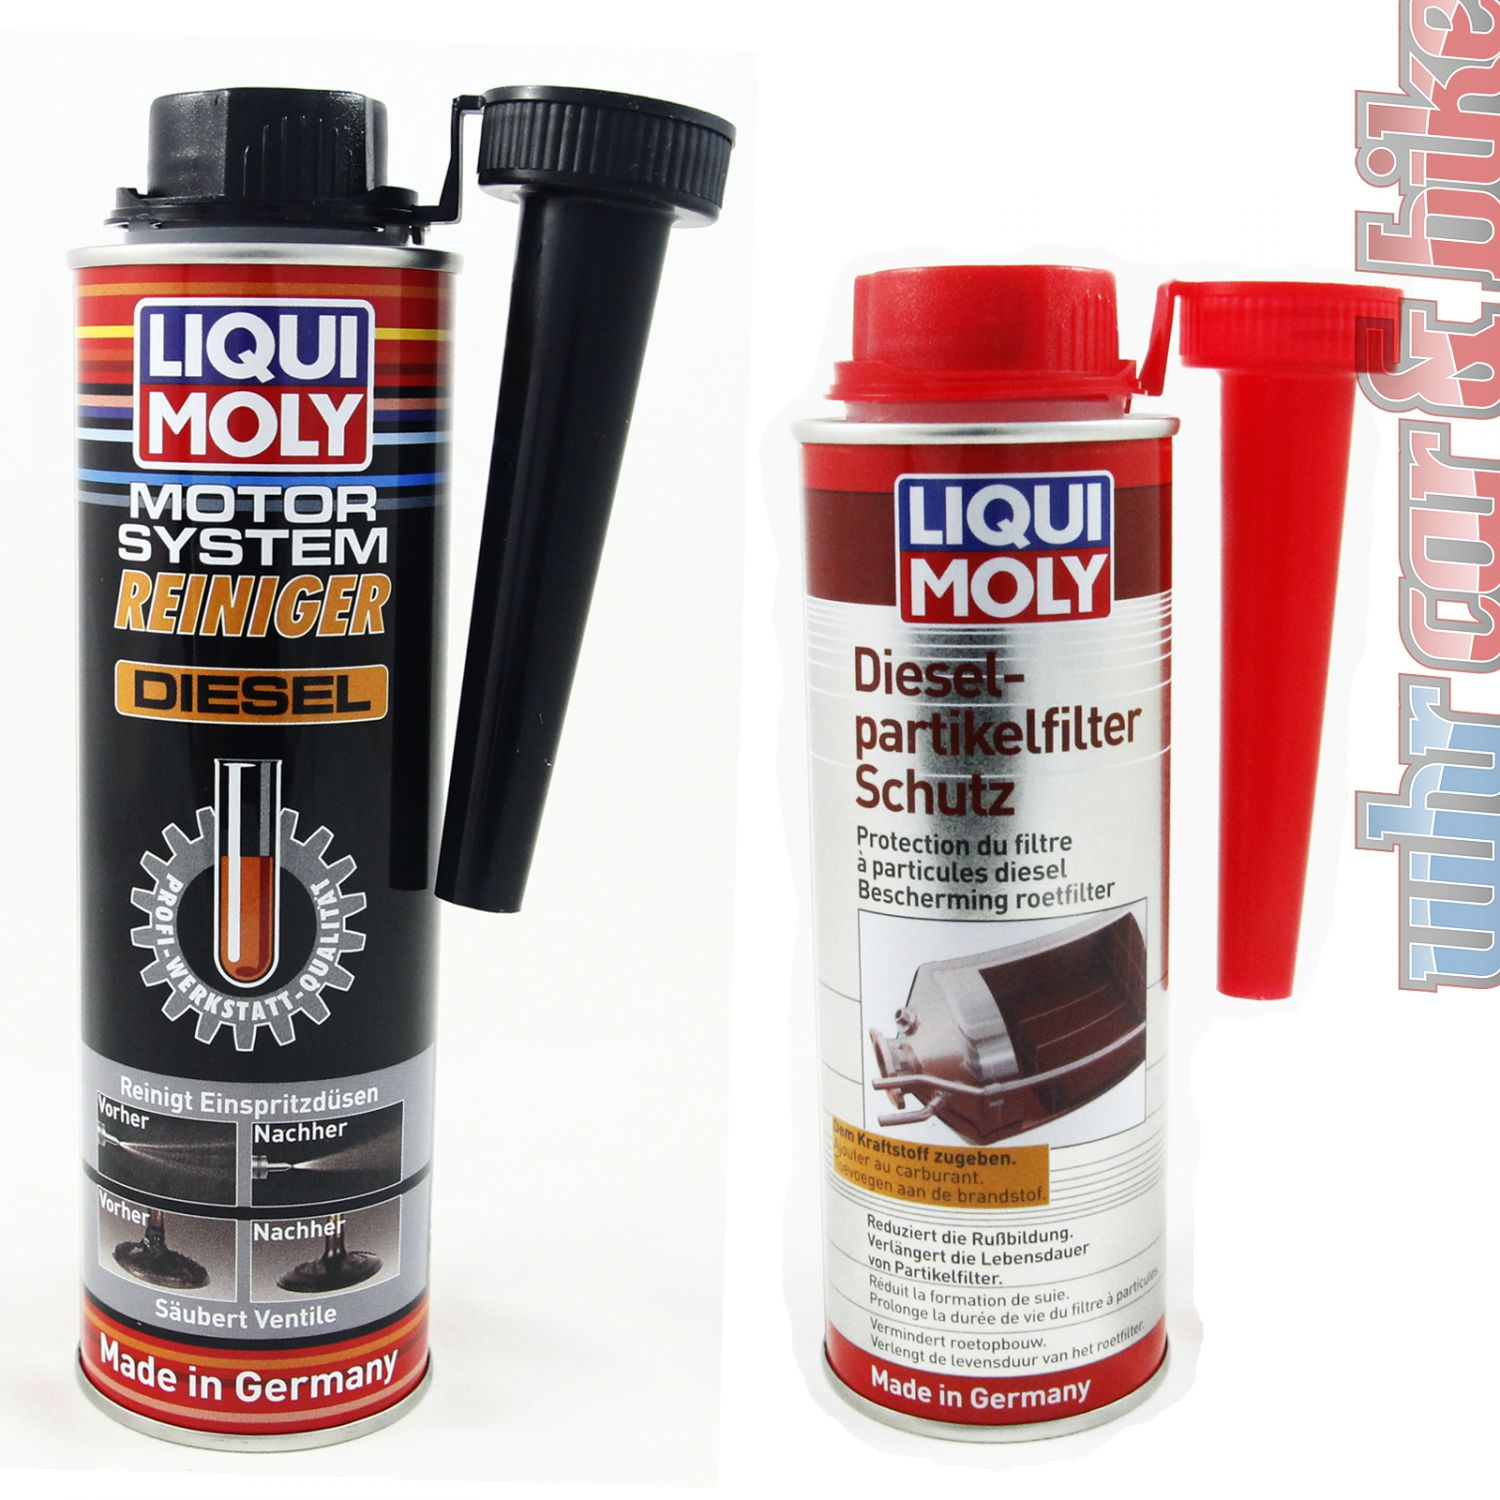 liqui moly 5128 motor system reiniger diesel 5148 diesel. Black Bedroom Furniture Sets. Home Design Ideas